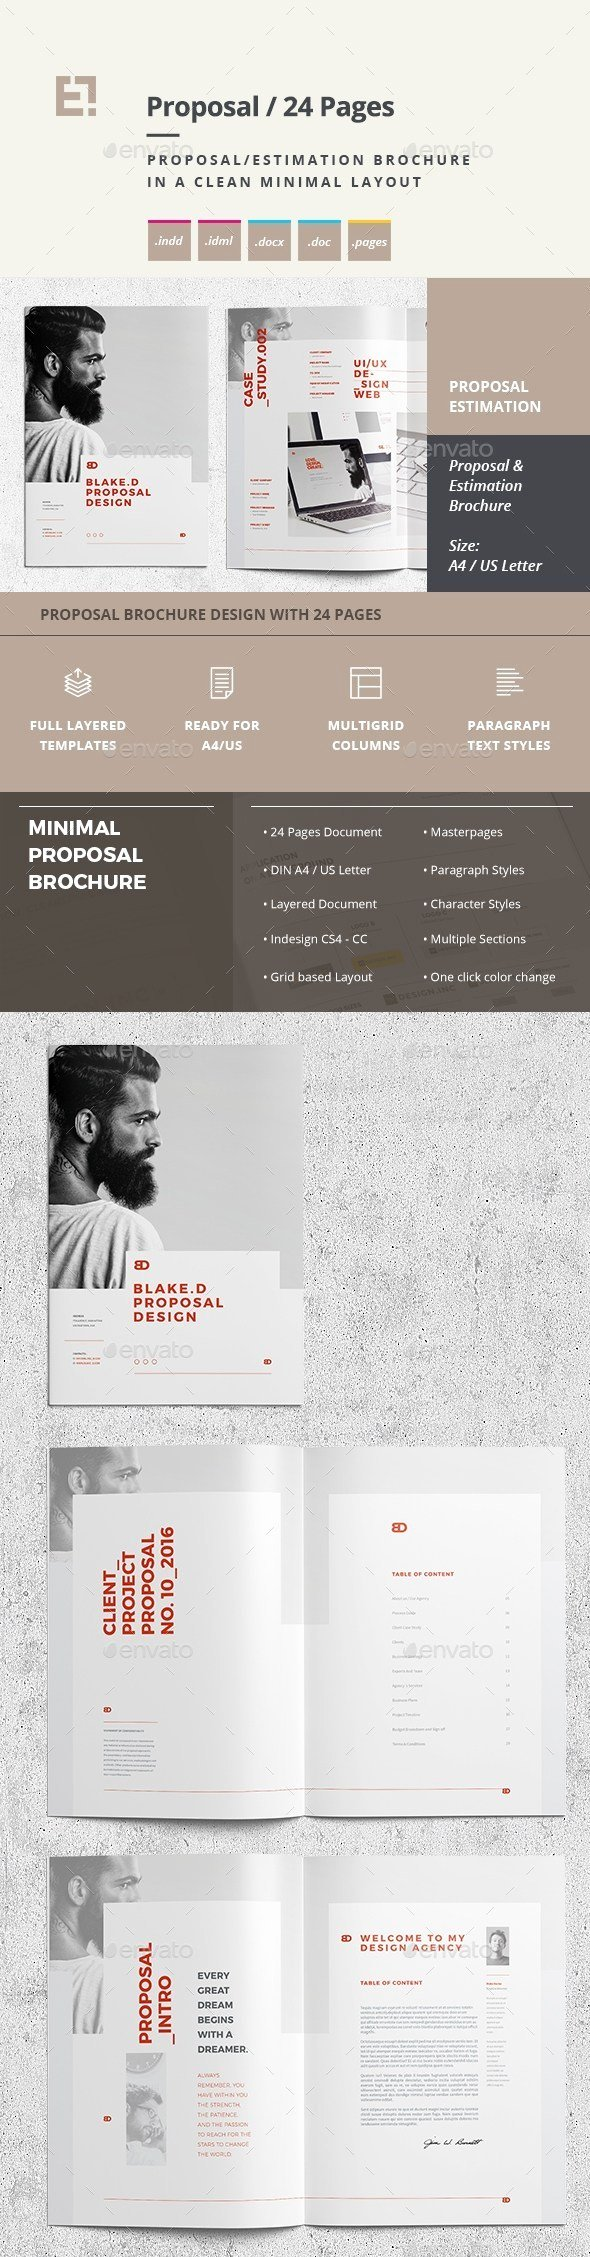 Indesign Business Plan Template Luxury 30 Indesign Business Proposal Templates